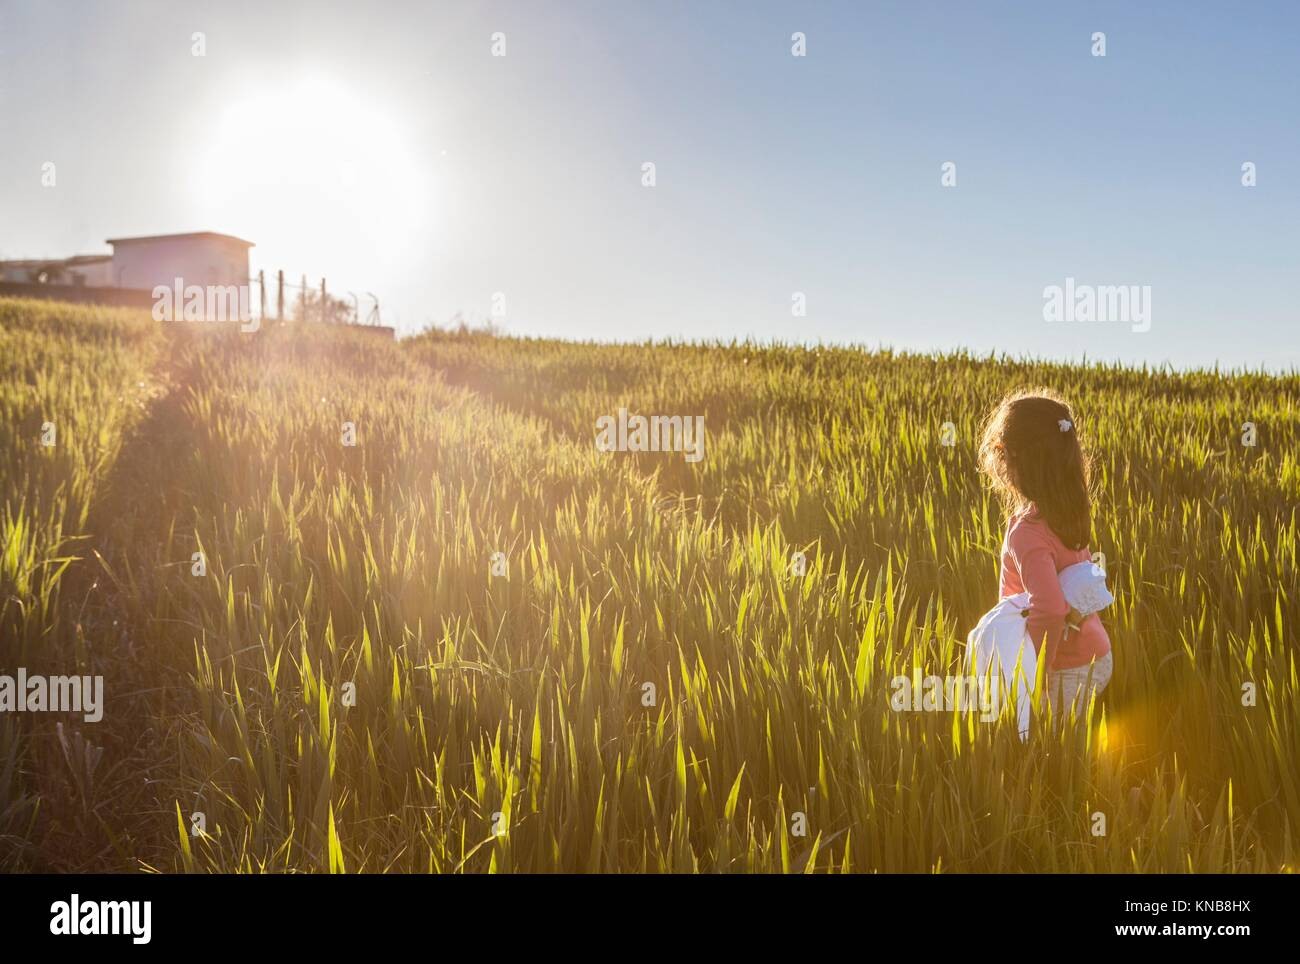 Little girl and her doll walking to the sun through green cereal field. Bravery concept. - Stock Image